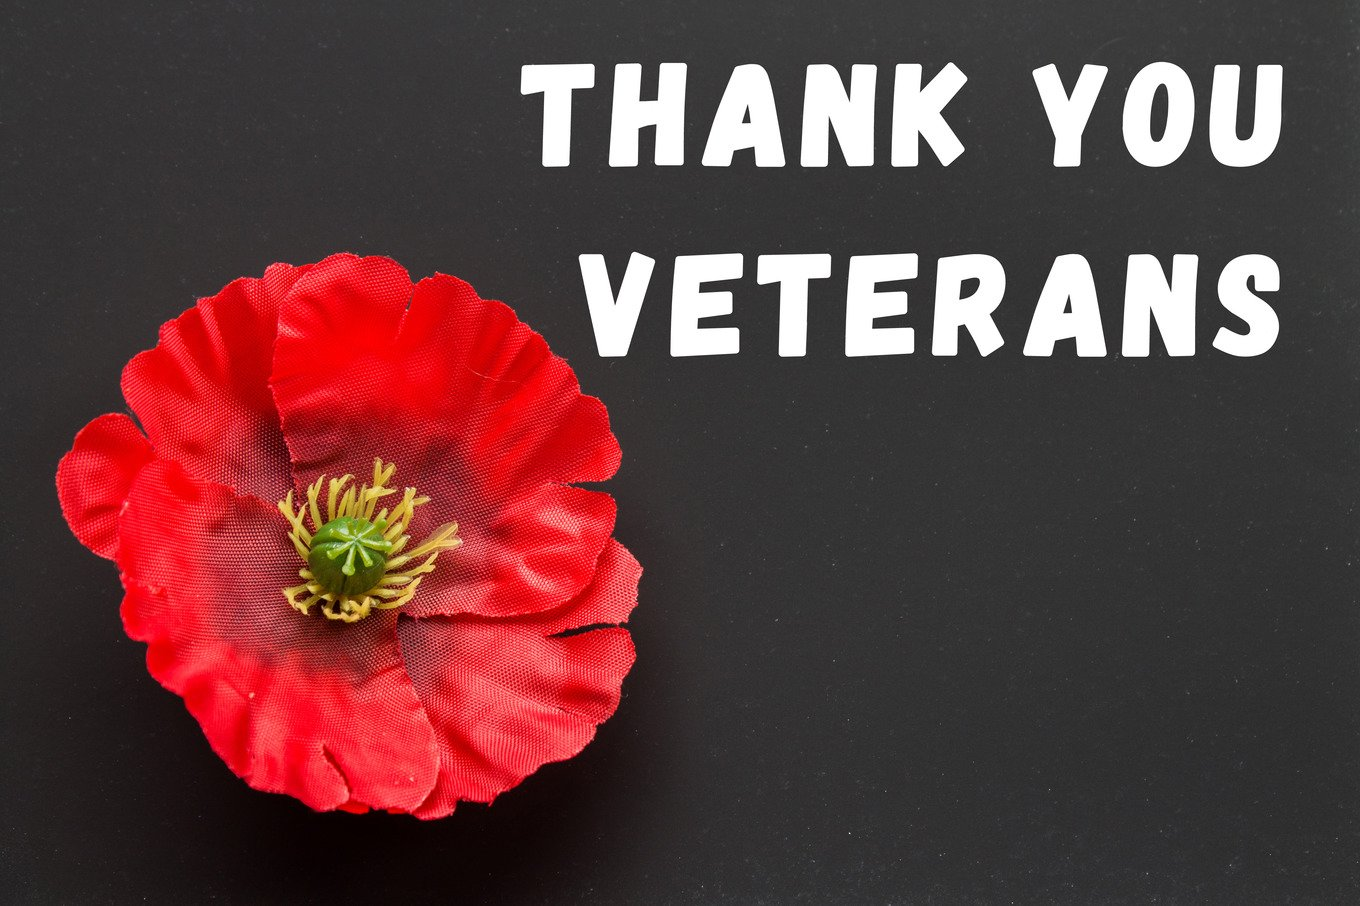 The Text Thank You Veterans Written In A Chalkboard And Red Poppy On